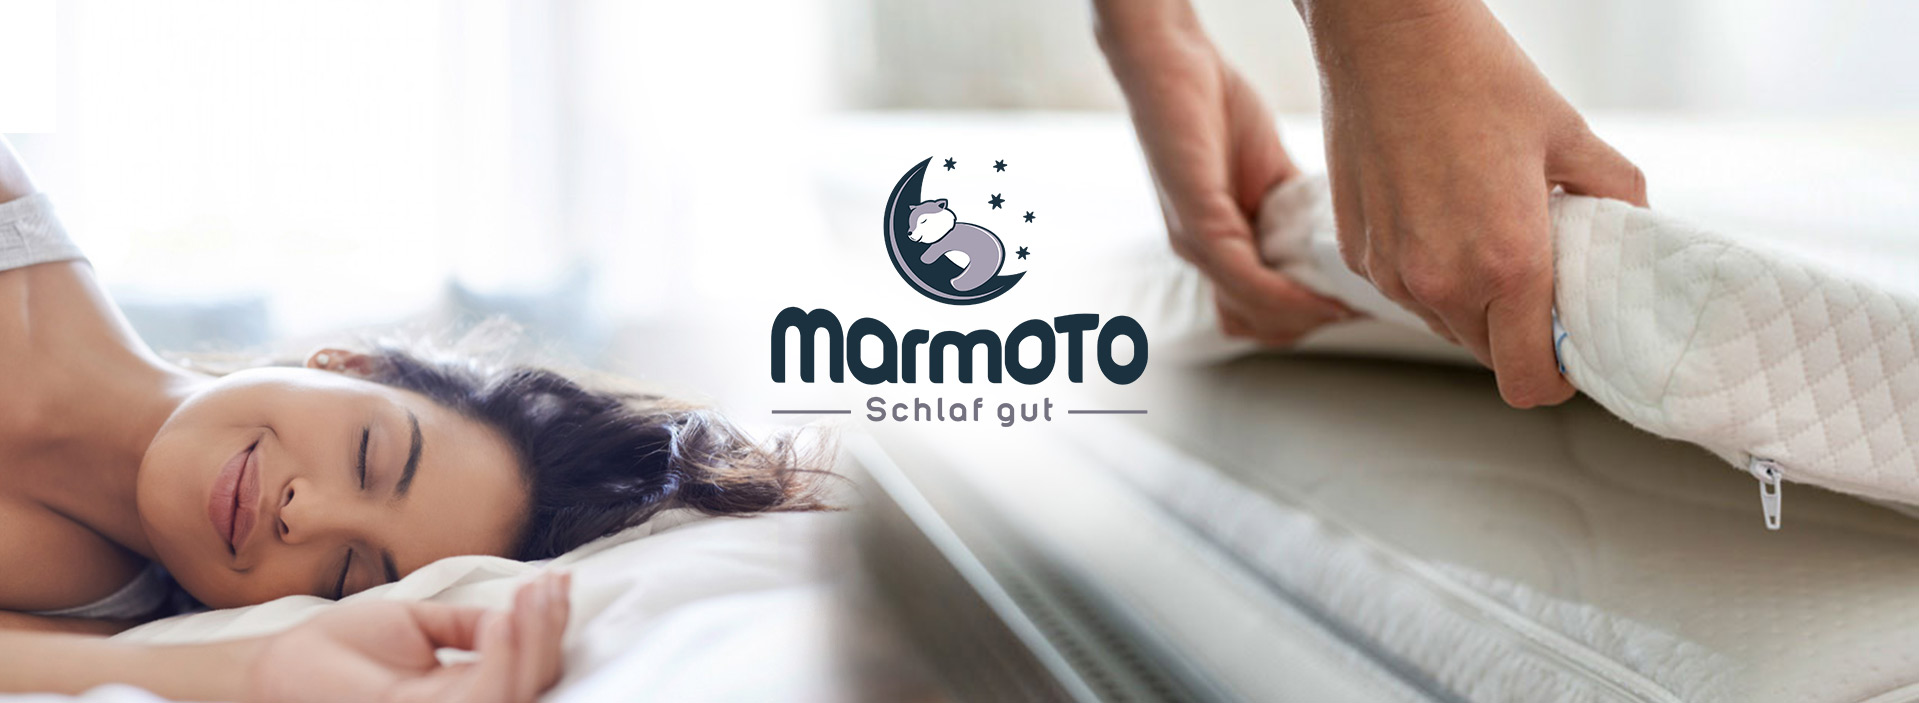 Marmoto - Schlaf gut Header